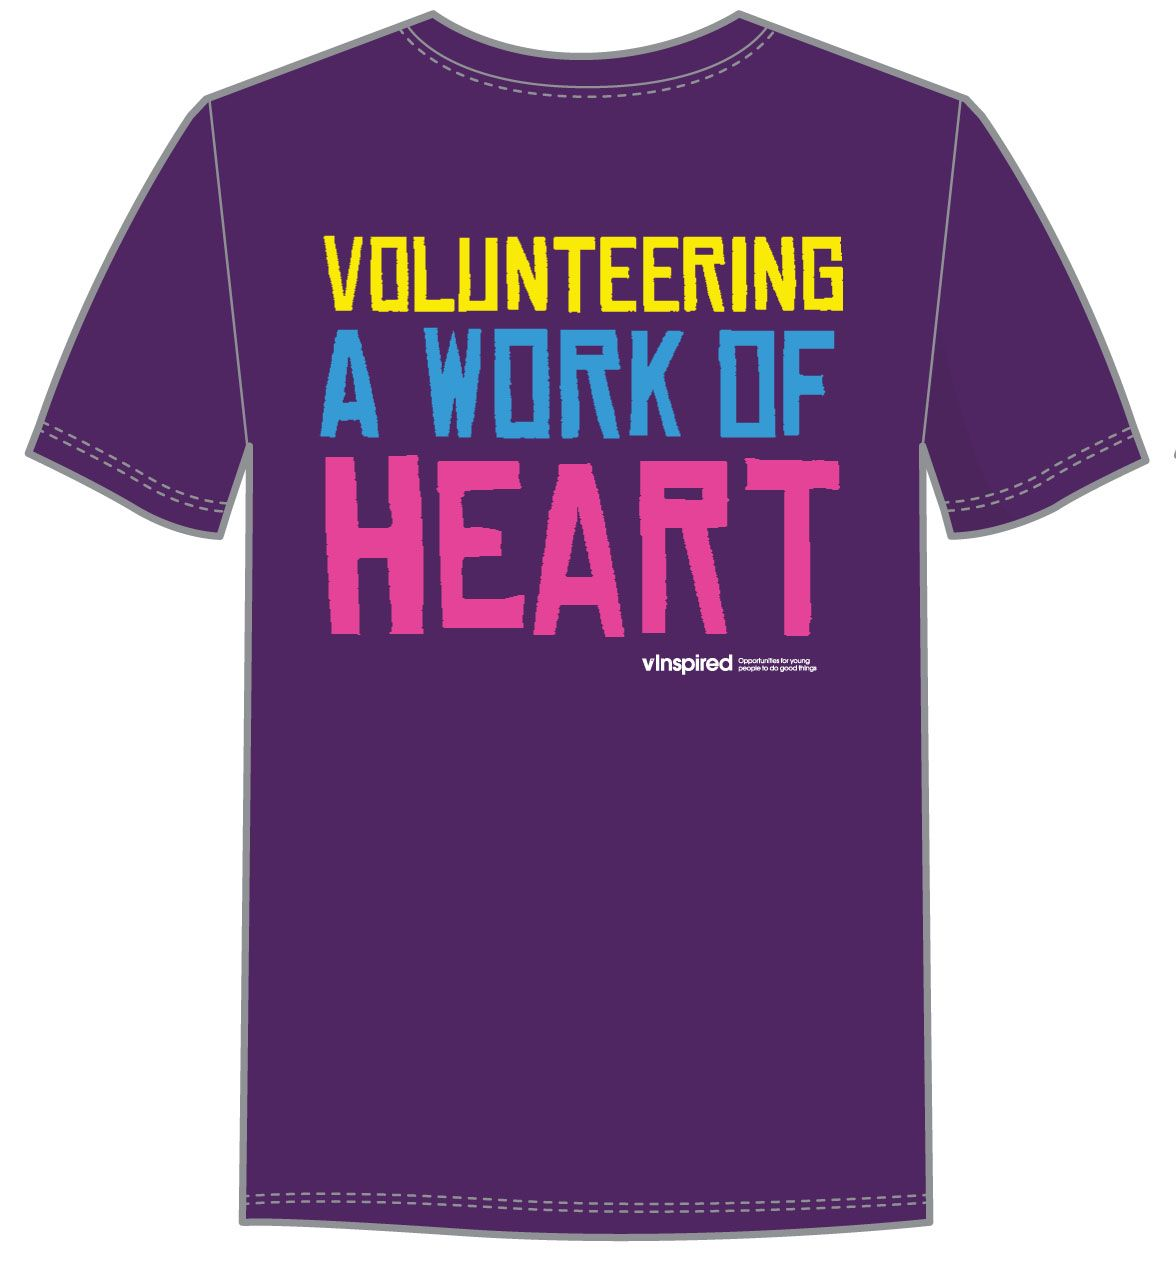 T shirt design ideas for schools - Find This Pin And More On Volunteer T Shirt Ideas